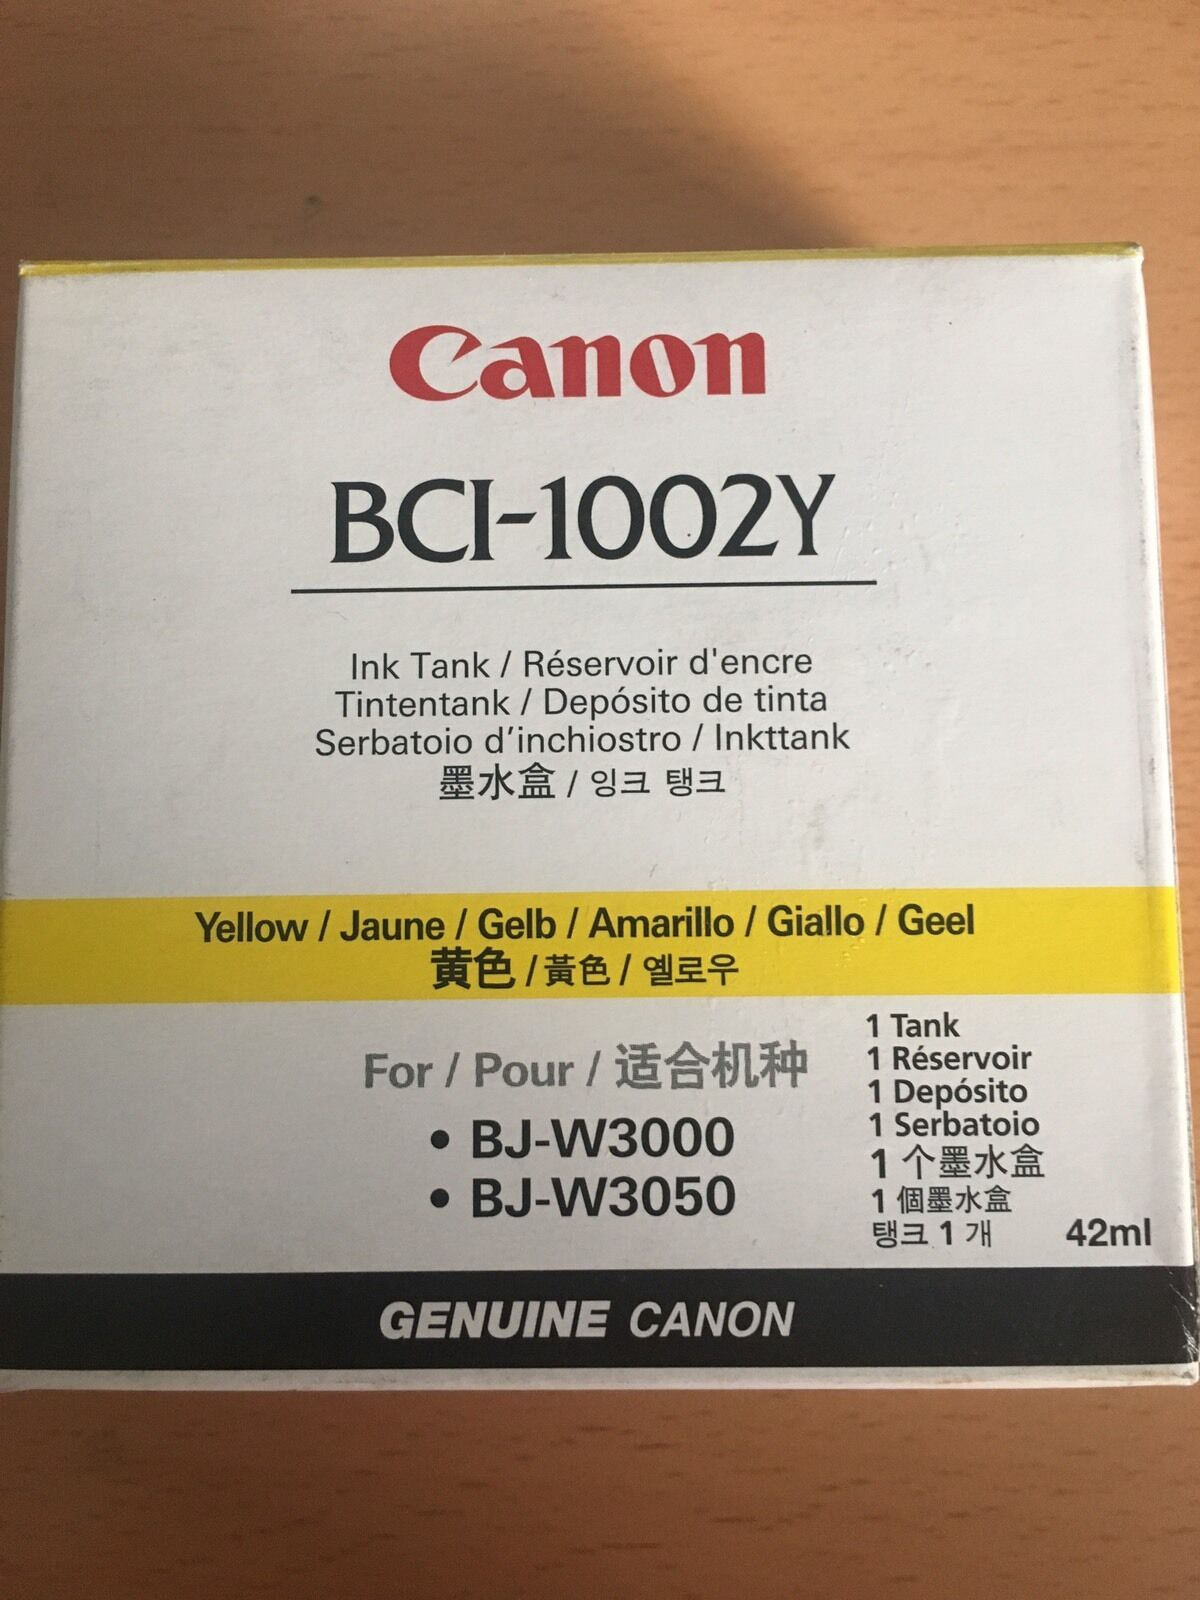 Canon Bci 1002y Ink Tank 1 Yellow Ebay Tinta G Series Norton Secured Powered By Verisign